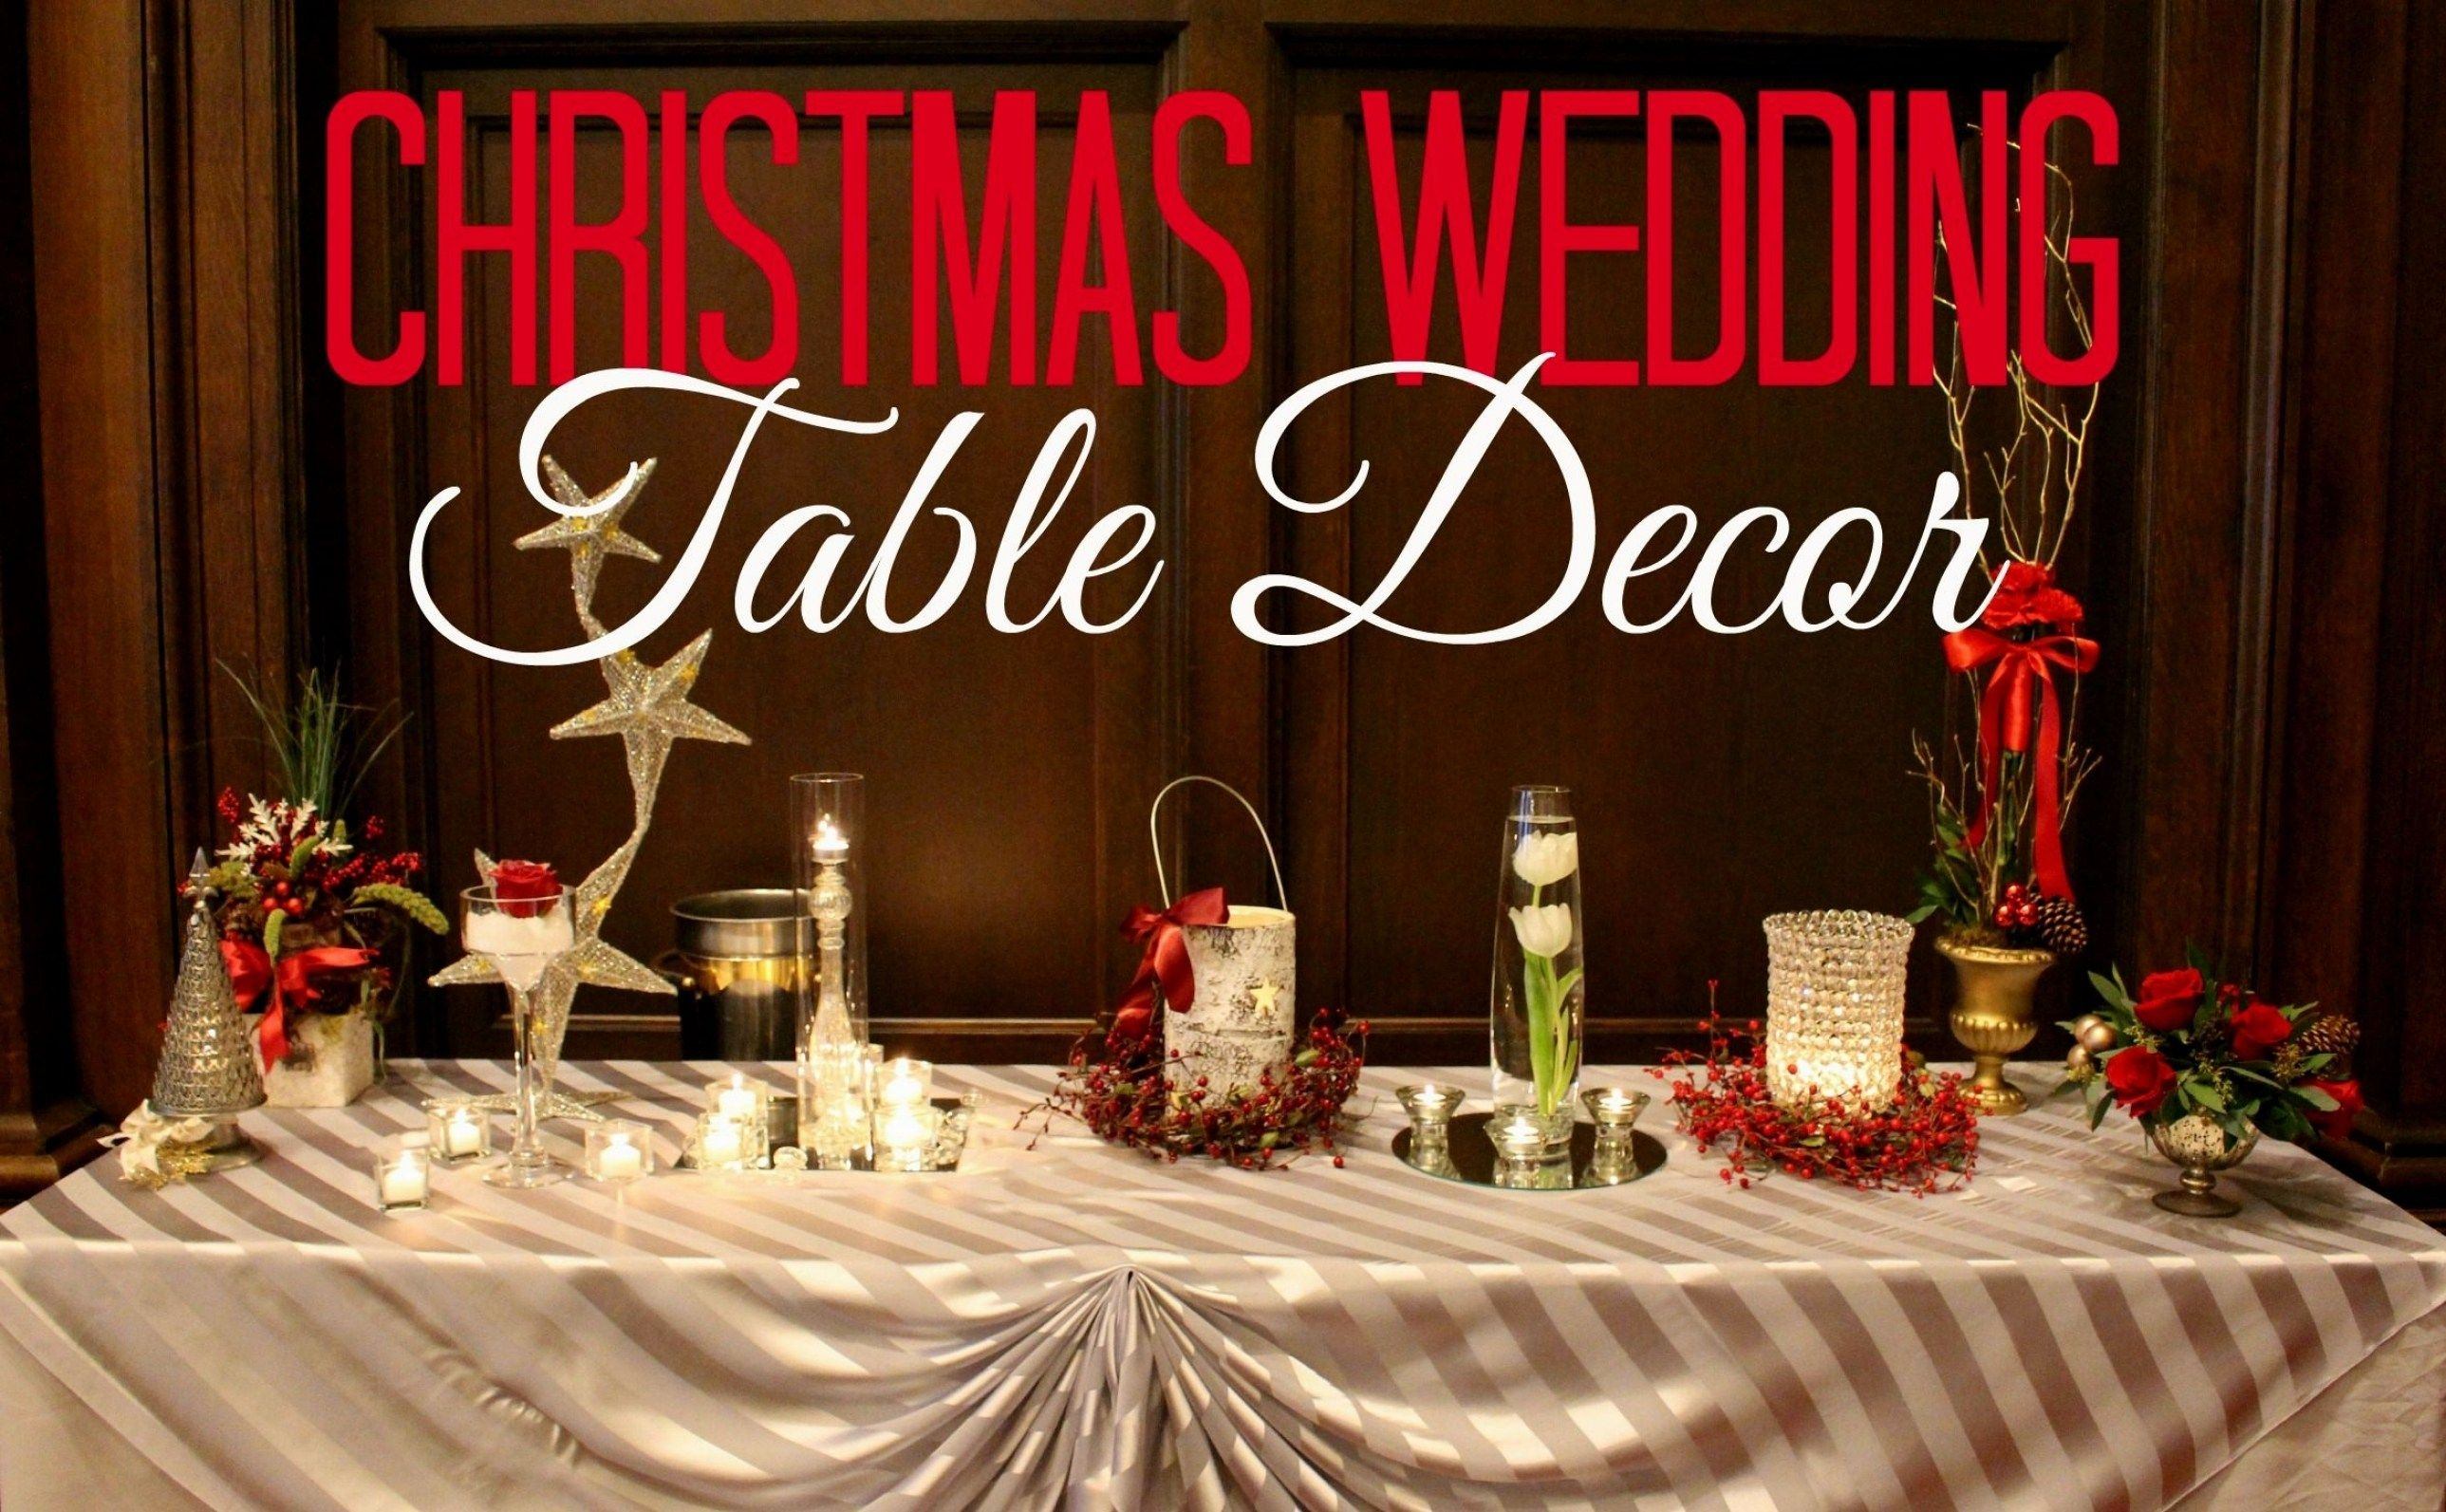 30 Stunning Decorating Ideas For A Christmas Wedding Reception